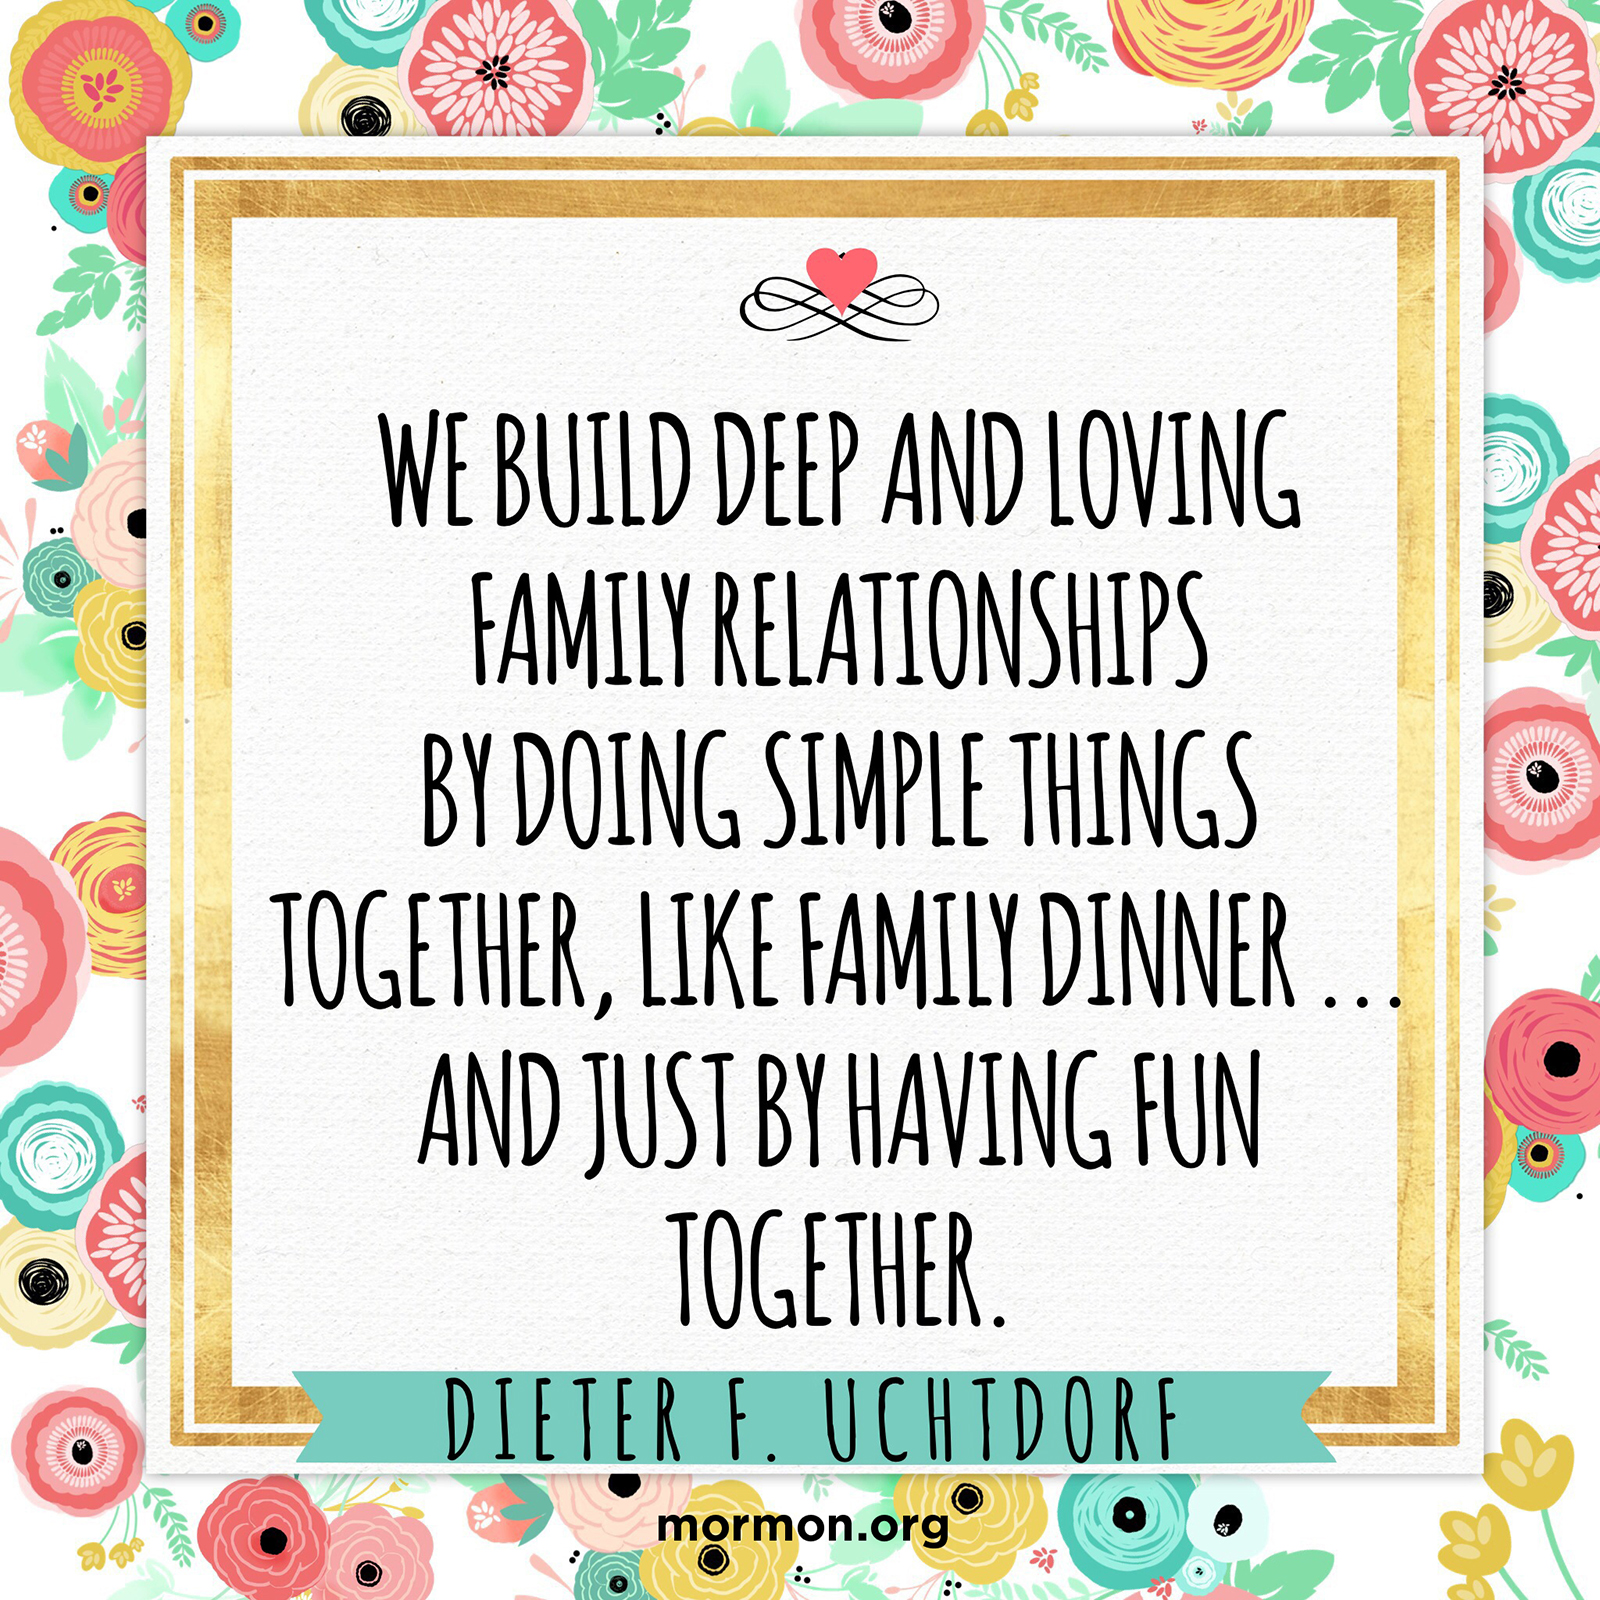 Building deep and loving relationships